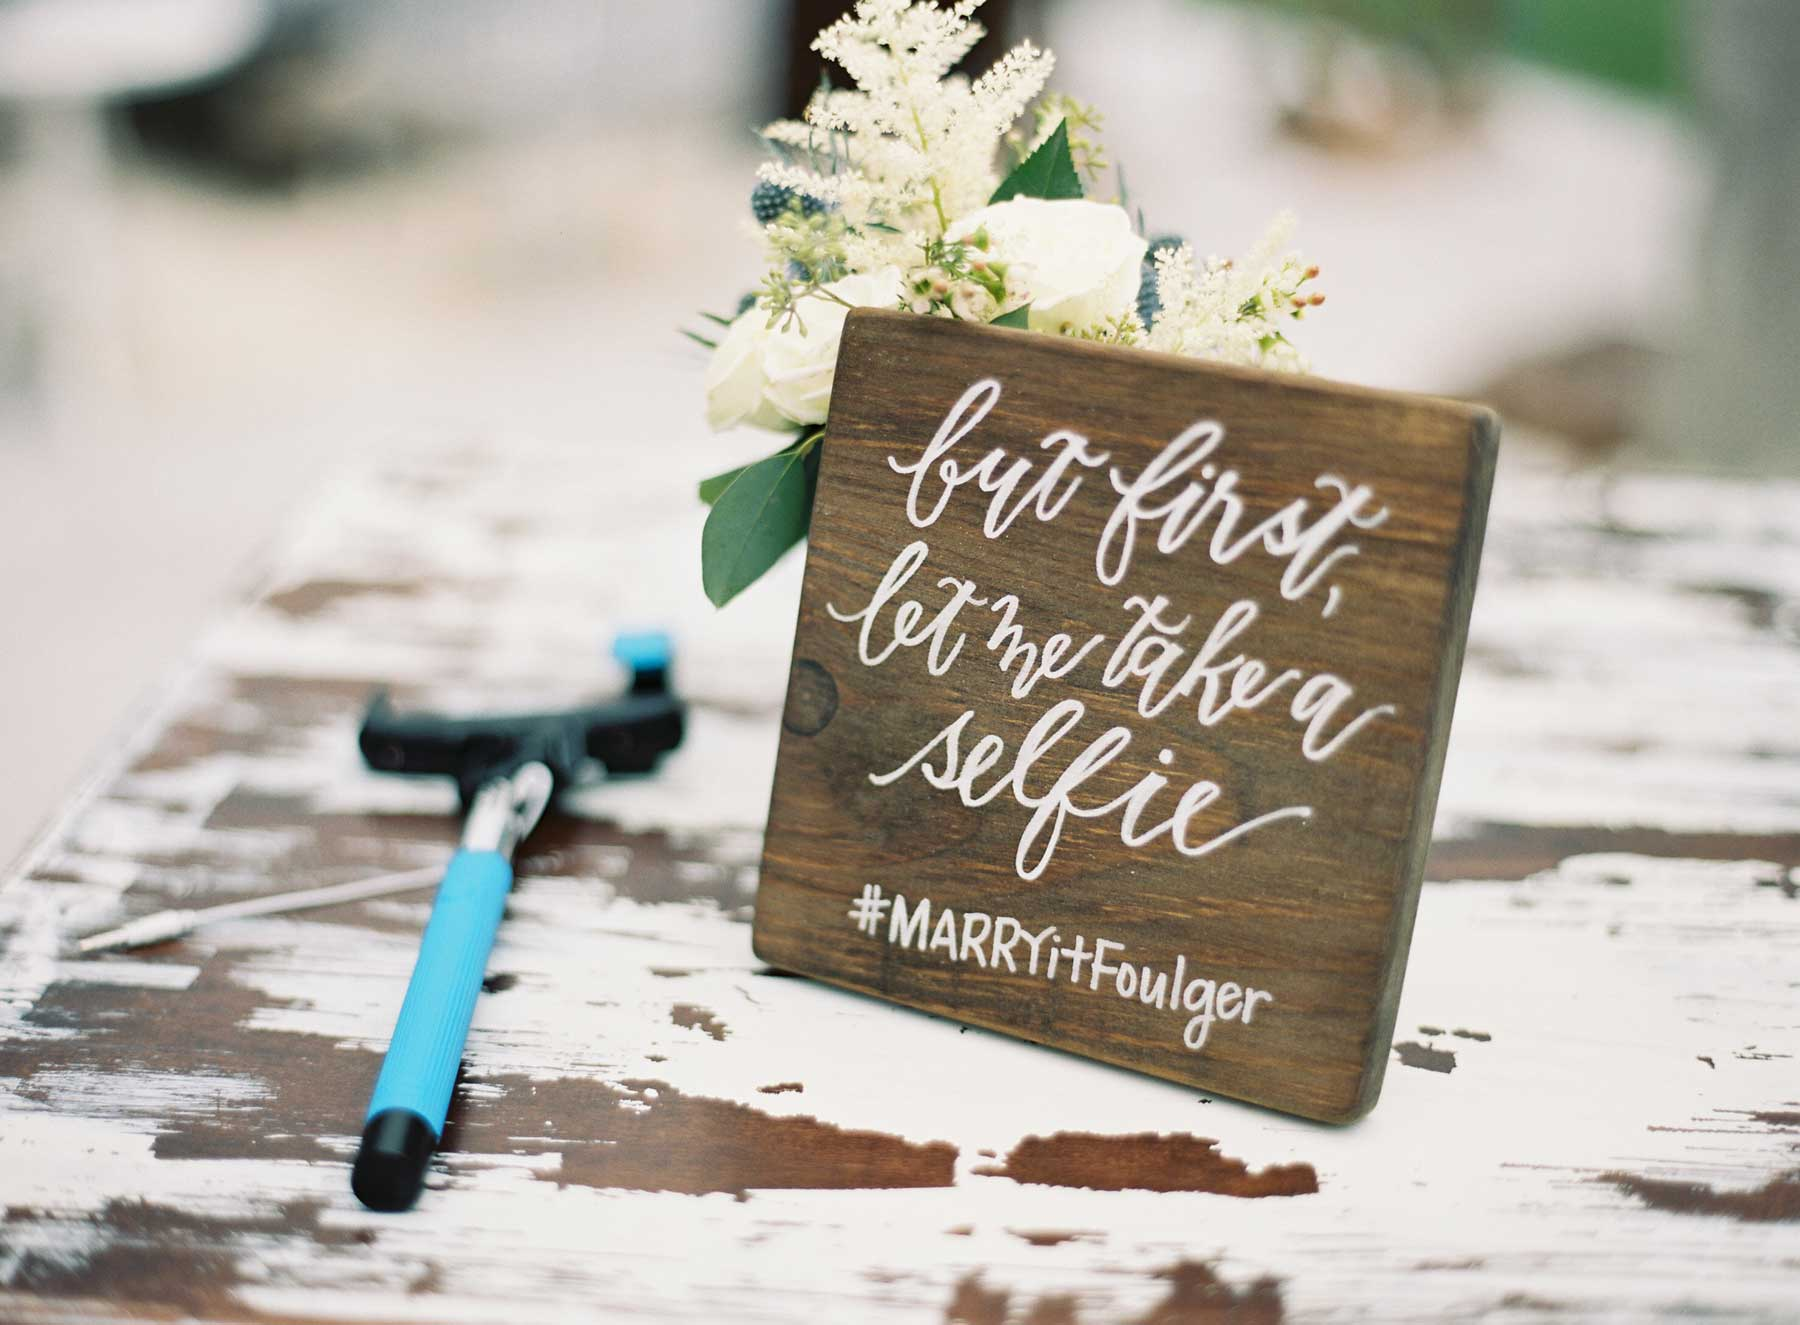 Wood sign with calligraphy Marriott Foulger wedding selfie stick